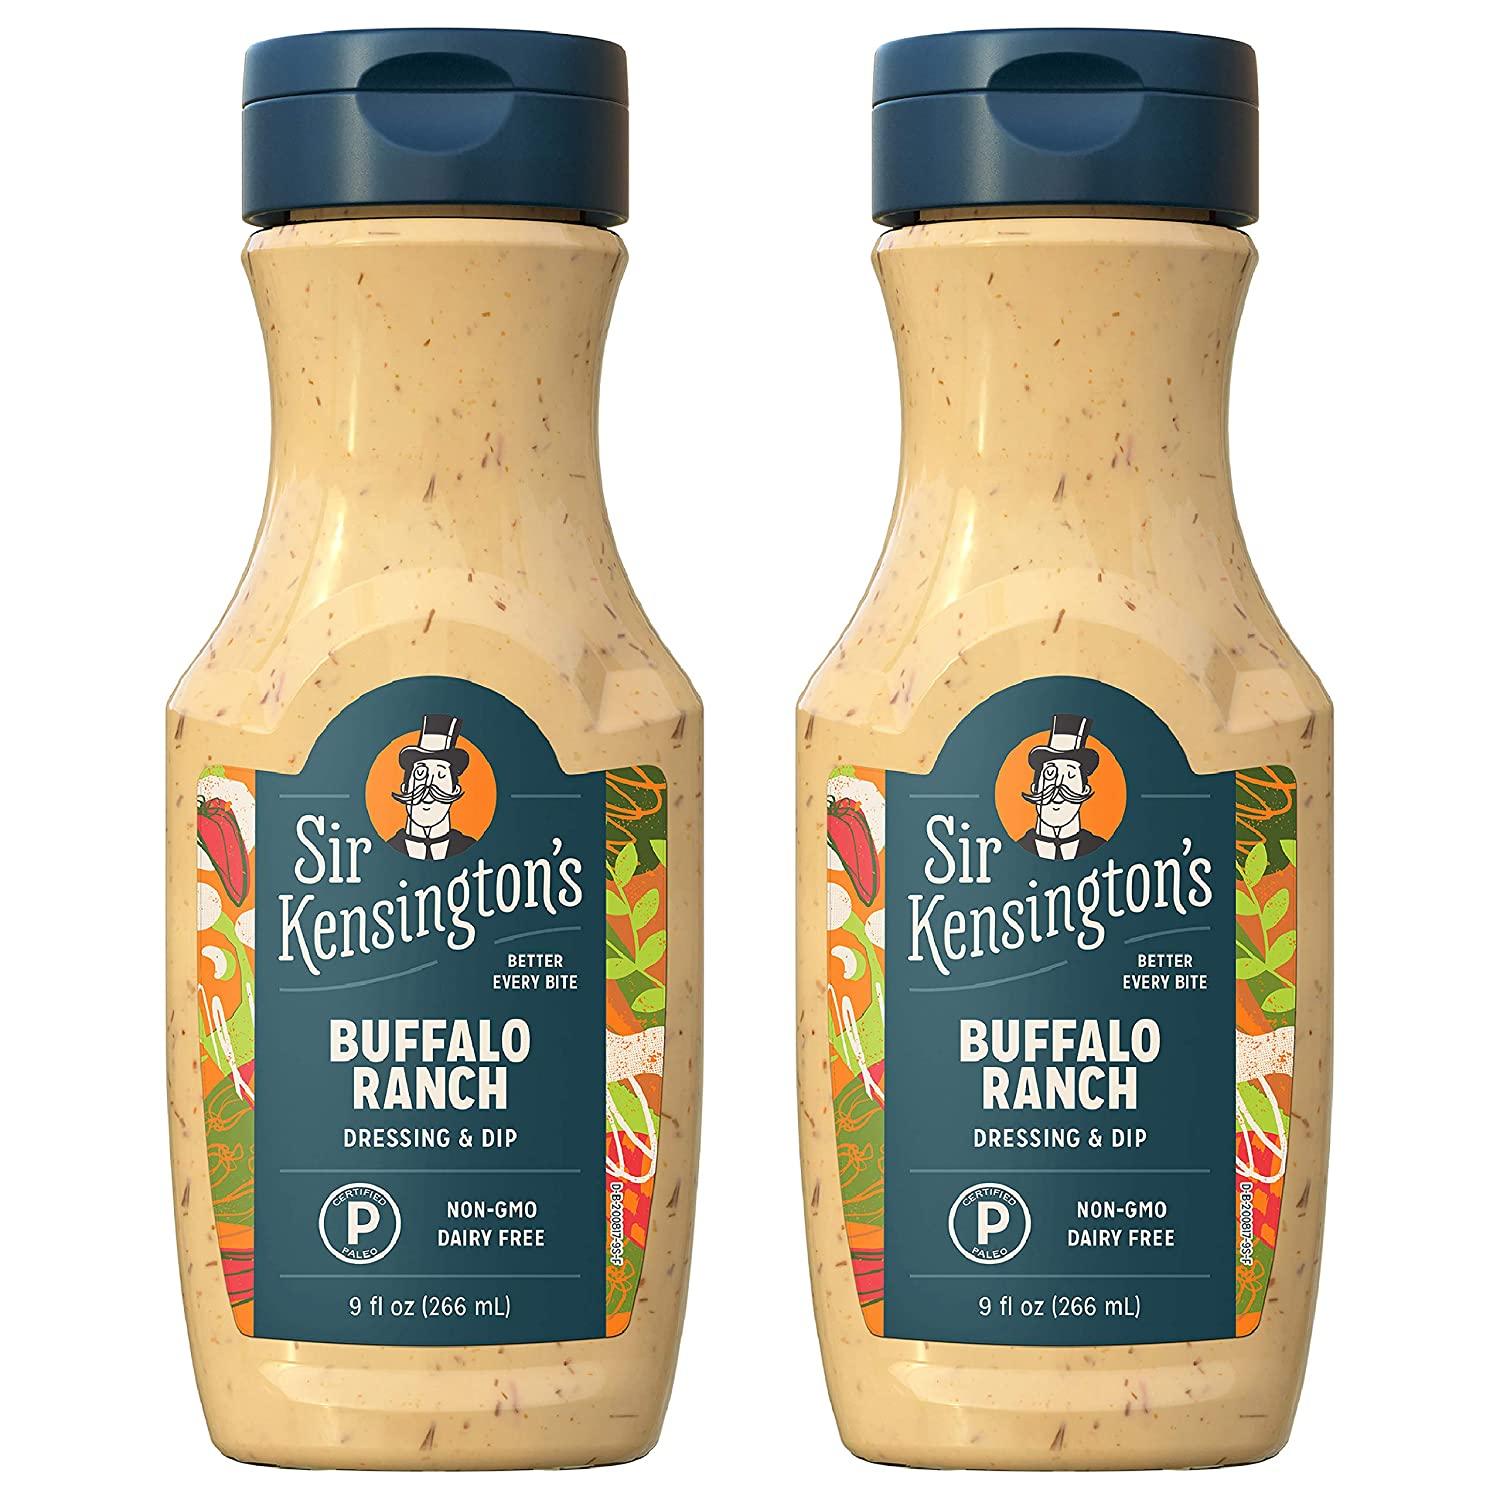 Sir Kensington's Ranch Dressing and Dip, Buffalo Ranch, Sugar Free, Dairy Free, Keto Diet & Paleo Diet Certified, Gluten Free, Non- GMO Project Verified, Shelf-Stable, 9 oz pack of 2